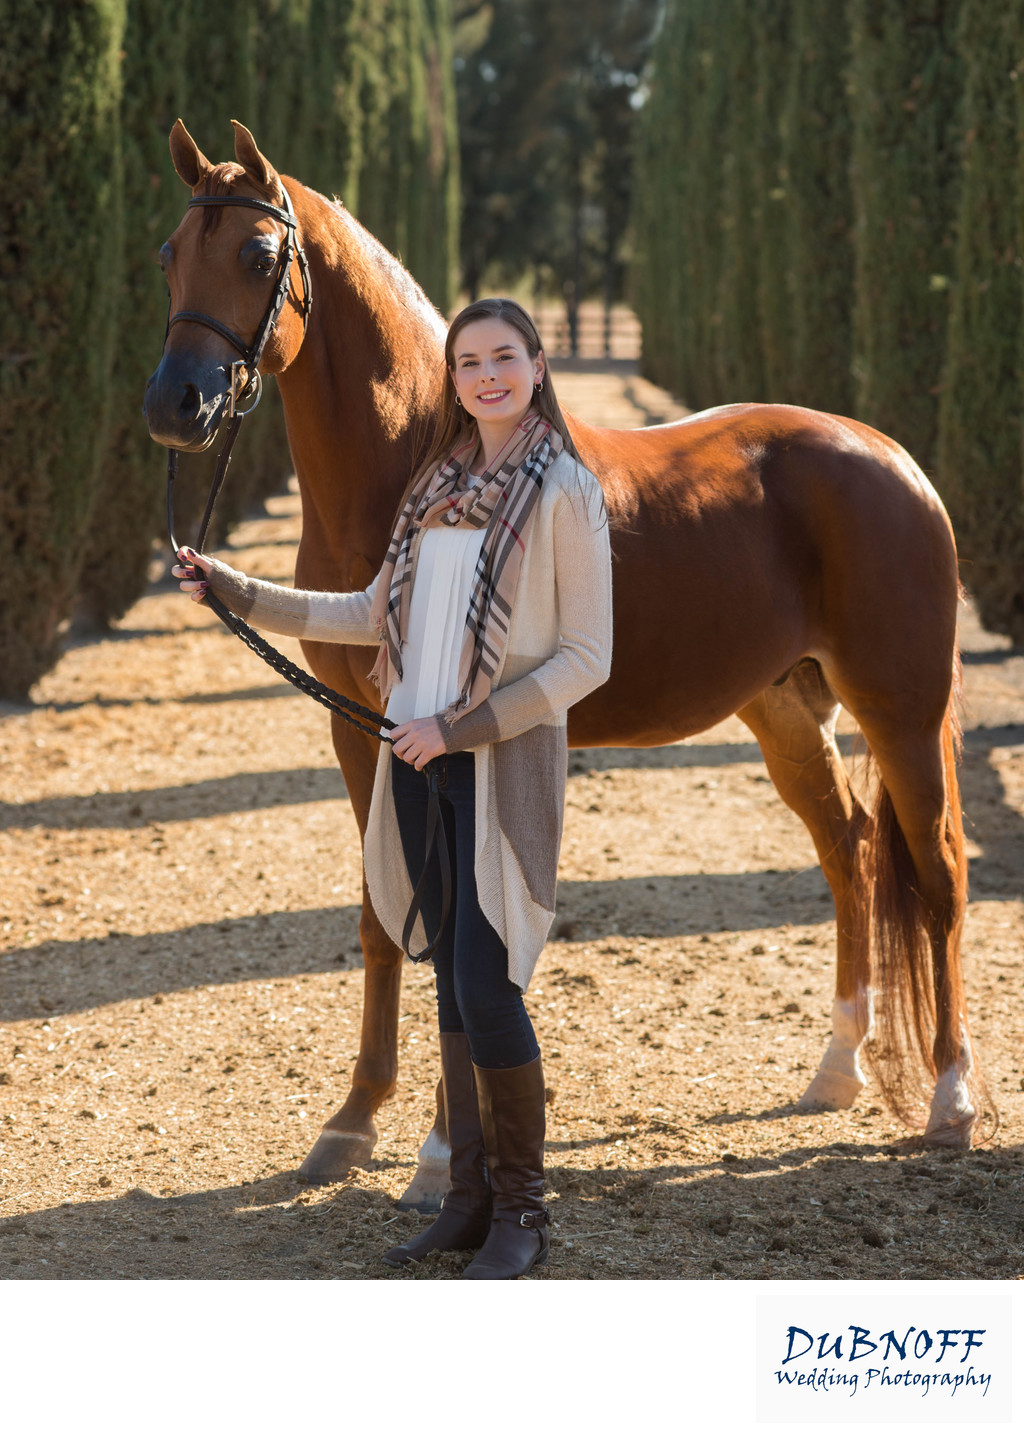 Outdoor Equine Photography in San Francisco and the Greater Bay Area